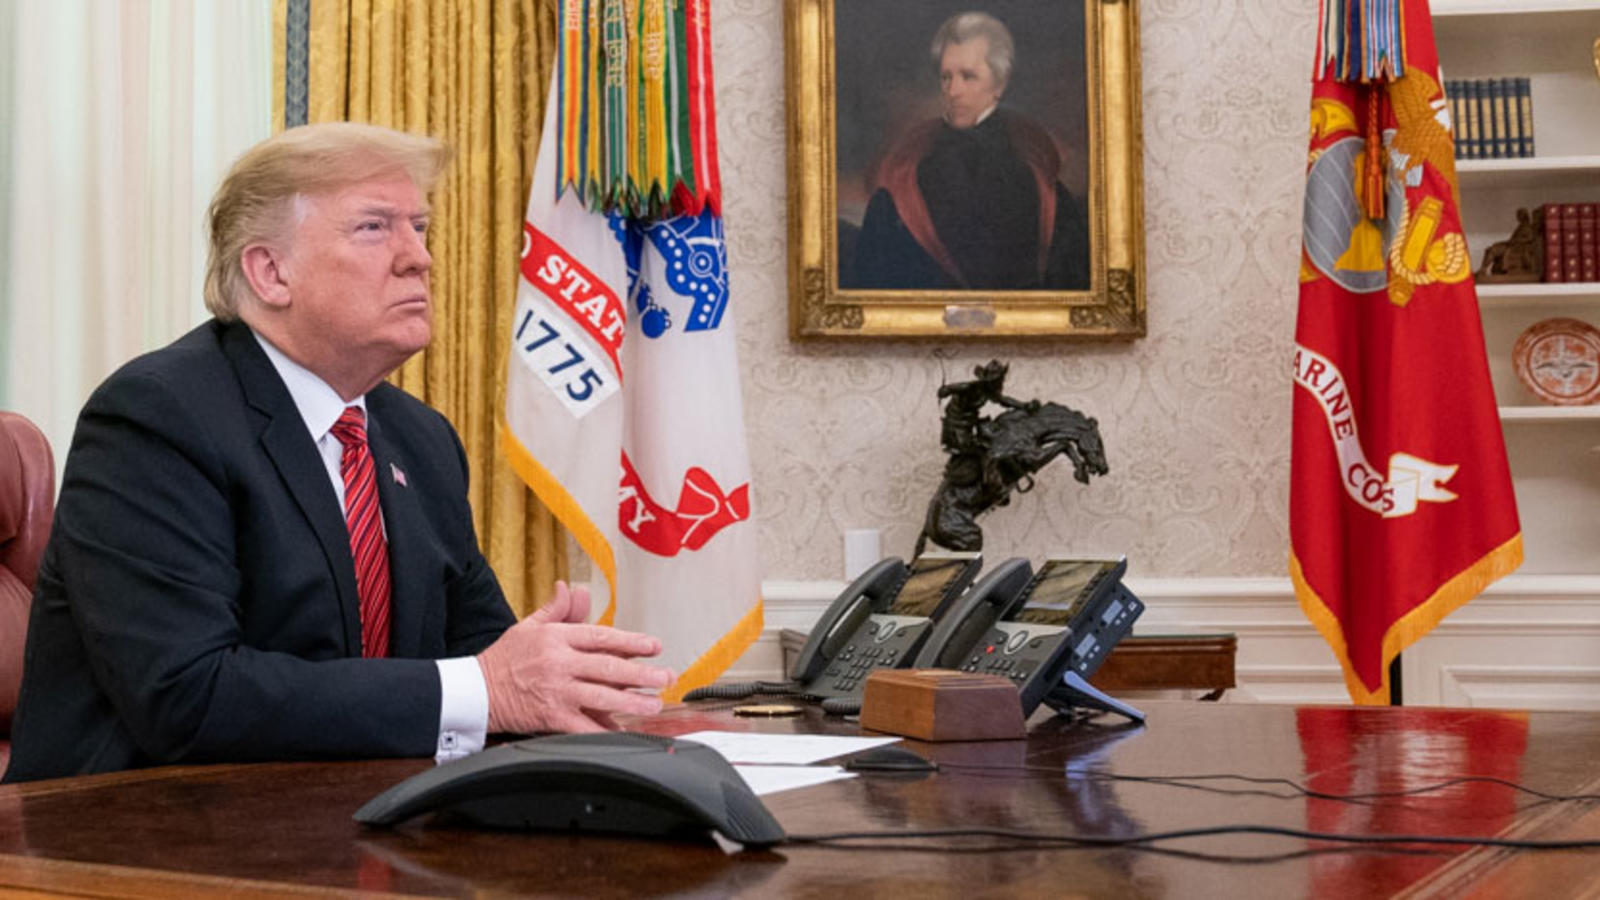 President Trump sits in the Oval Office